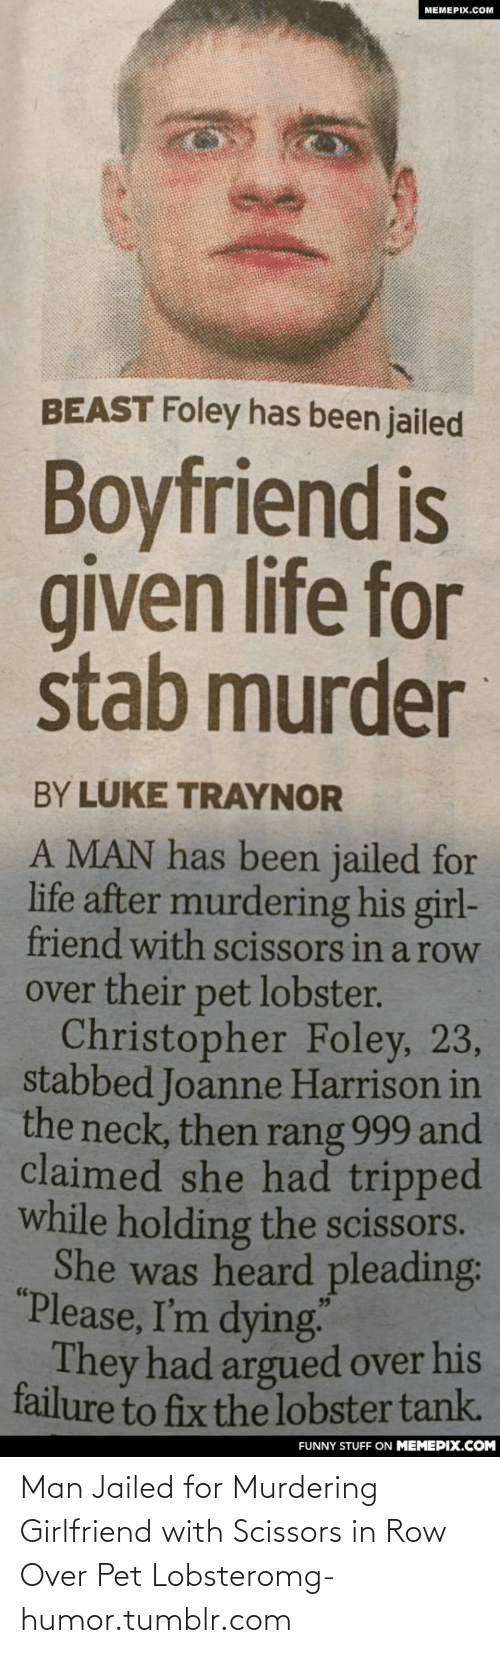 """Boyfriend: MEMEPIX.COM  BEAST Foley has been jailed  Boyfriend is  given life for  stab murder  BY LÚKE TRAYNOR  A MAN has been jailed for  life after murdering his girl-  friend with scissors in a row  over their pet lobster.  Christopher Foley, 23,  stabbed Joanne Harrison in  the neck, then rang 999 and  claimed she had tripped  while holding the scissors.  She was heard pleading:  """"Please, I'm dying  They had argued over his  failure to fix the lobster tank.  FUNNY STUFF ON MEMEPIX.COM Man Jailed for Murdering Girlfriend with Scissors in Row Over Pet Lobsteromg-humor.tumblr.com"""